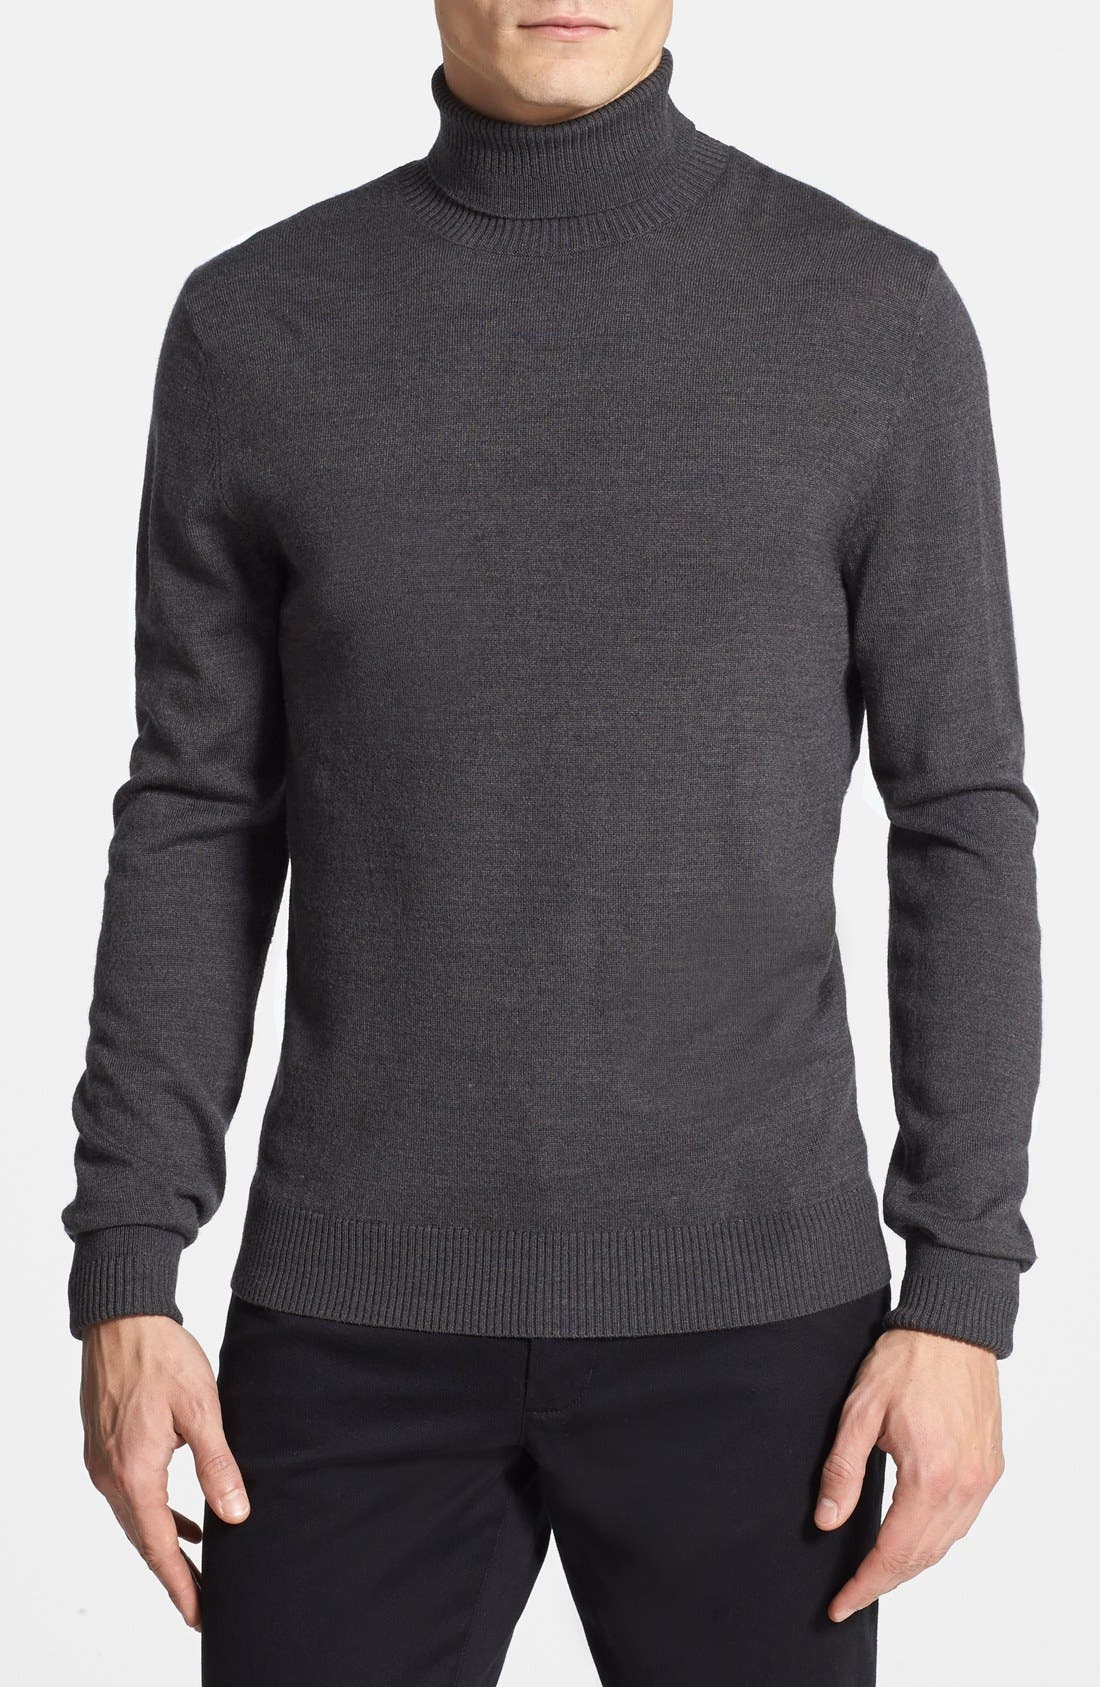 Vince Camuto Merino Wool Turtleneck